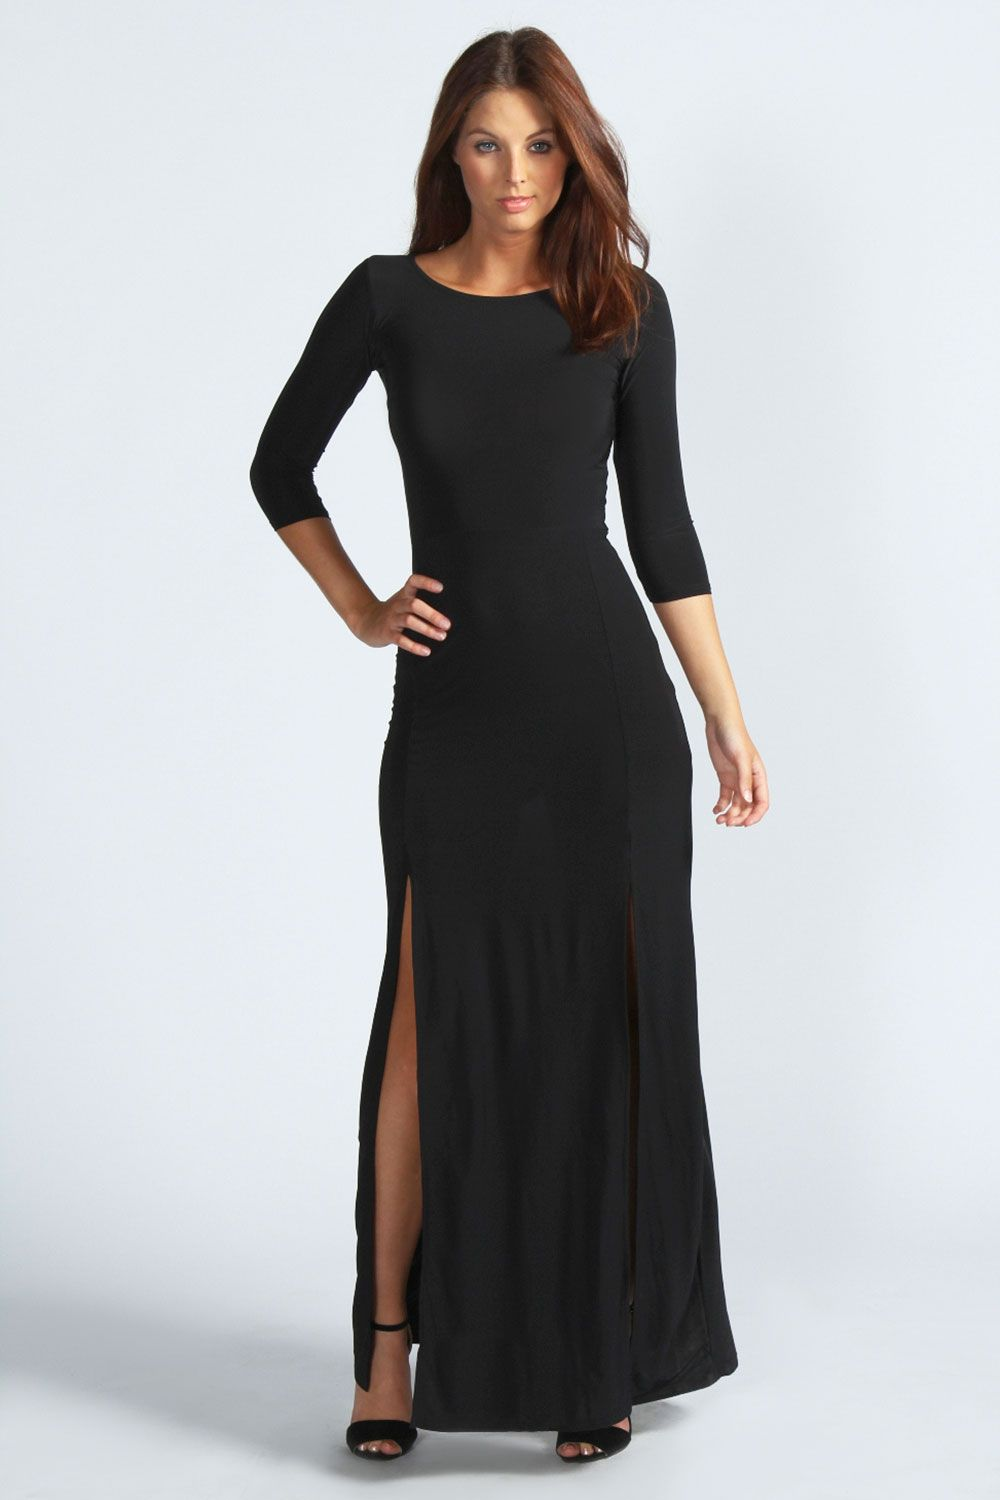 Black Extra Long Maxi Dress | Maxi Dresses | Pinterest | Maxi ...